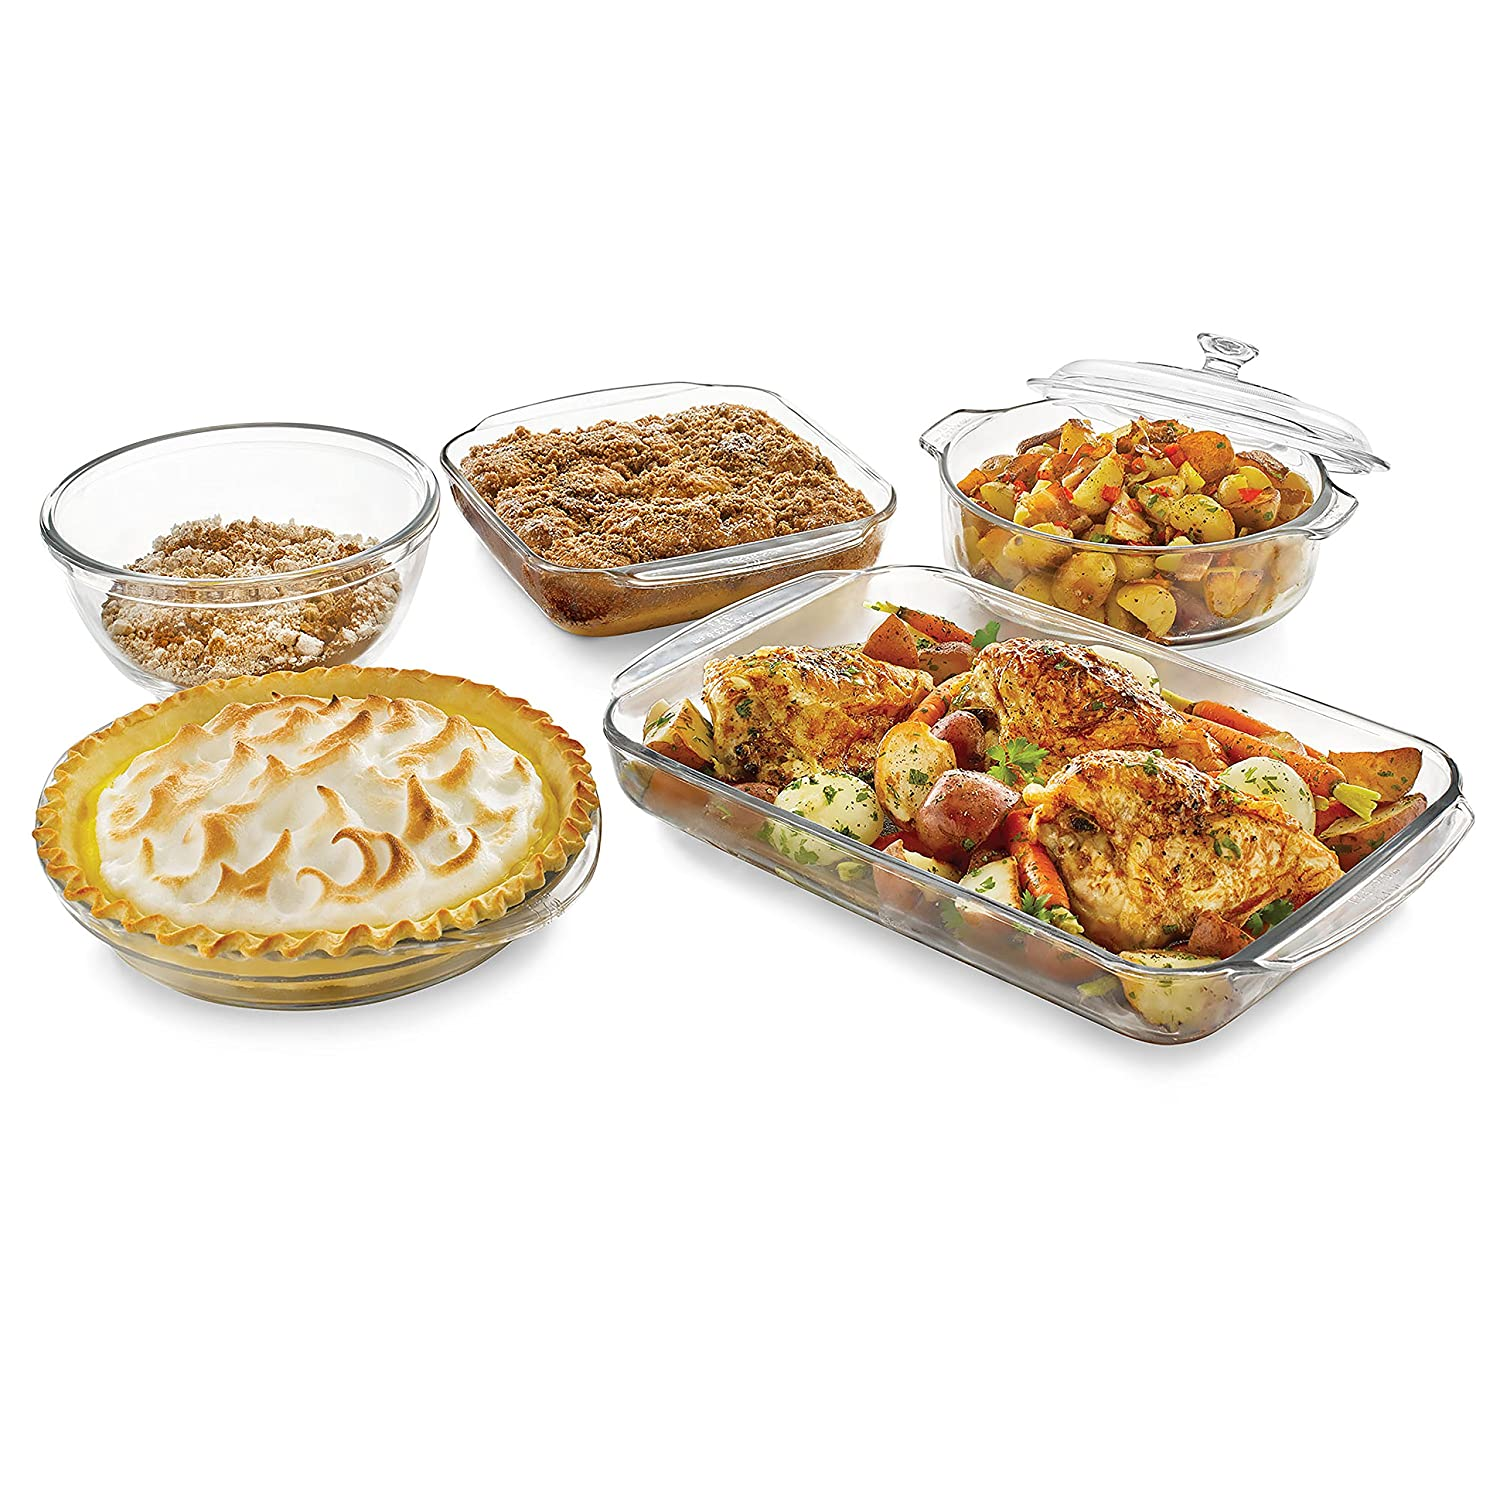 Libbey Backer's Basics 5-Piece Glass Casserole Baking Dish Set with Glass Covers